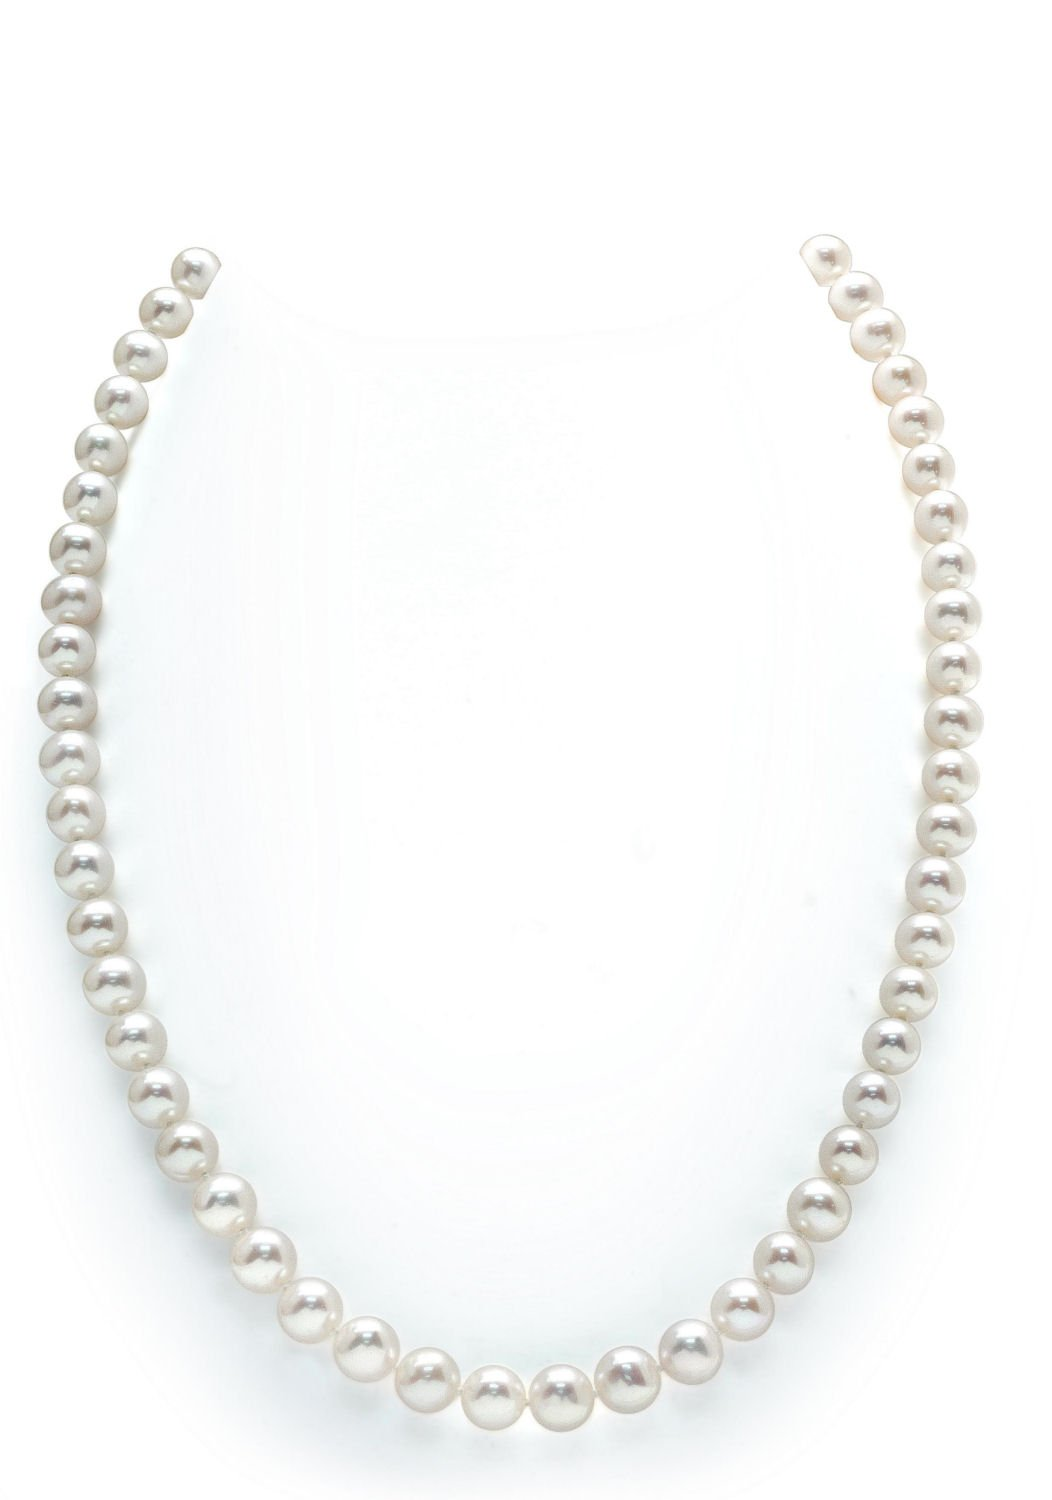 7-8mm Round White Freshwater Cultured Pearl Necklace, 20'' Matinee Length - AAA Quality